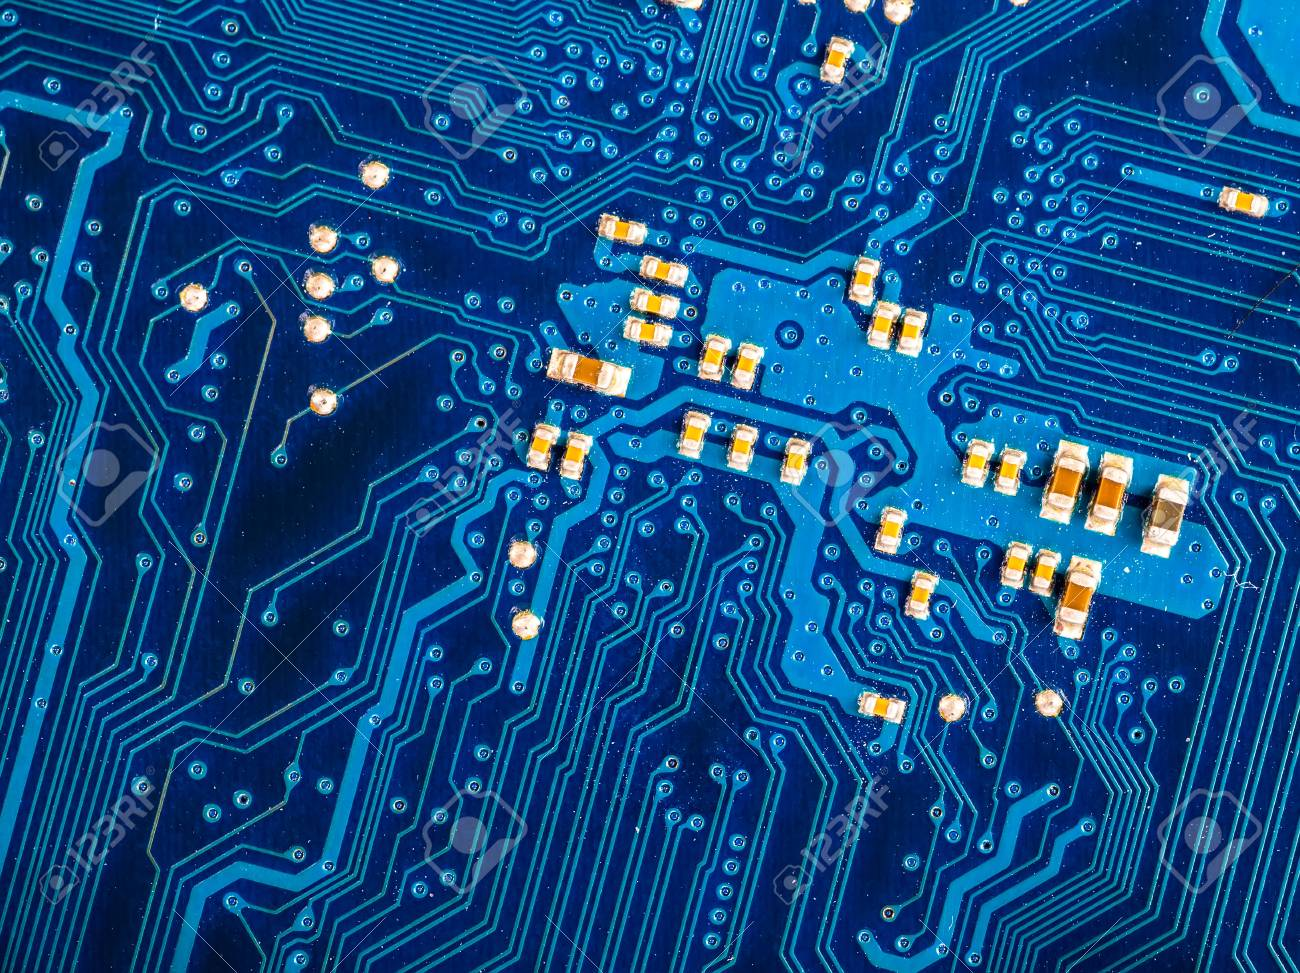 Computer Circuit Background Main Board Royalty Free Stock Photography Image Blue Of Motherboard Photo